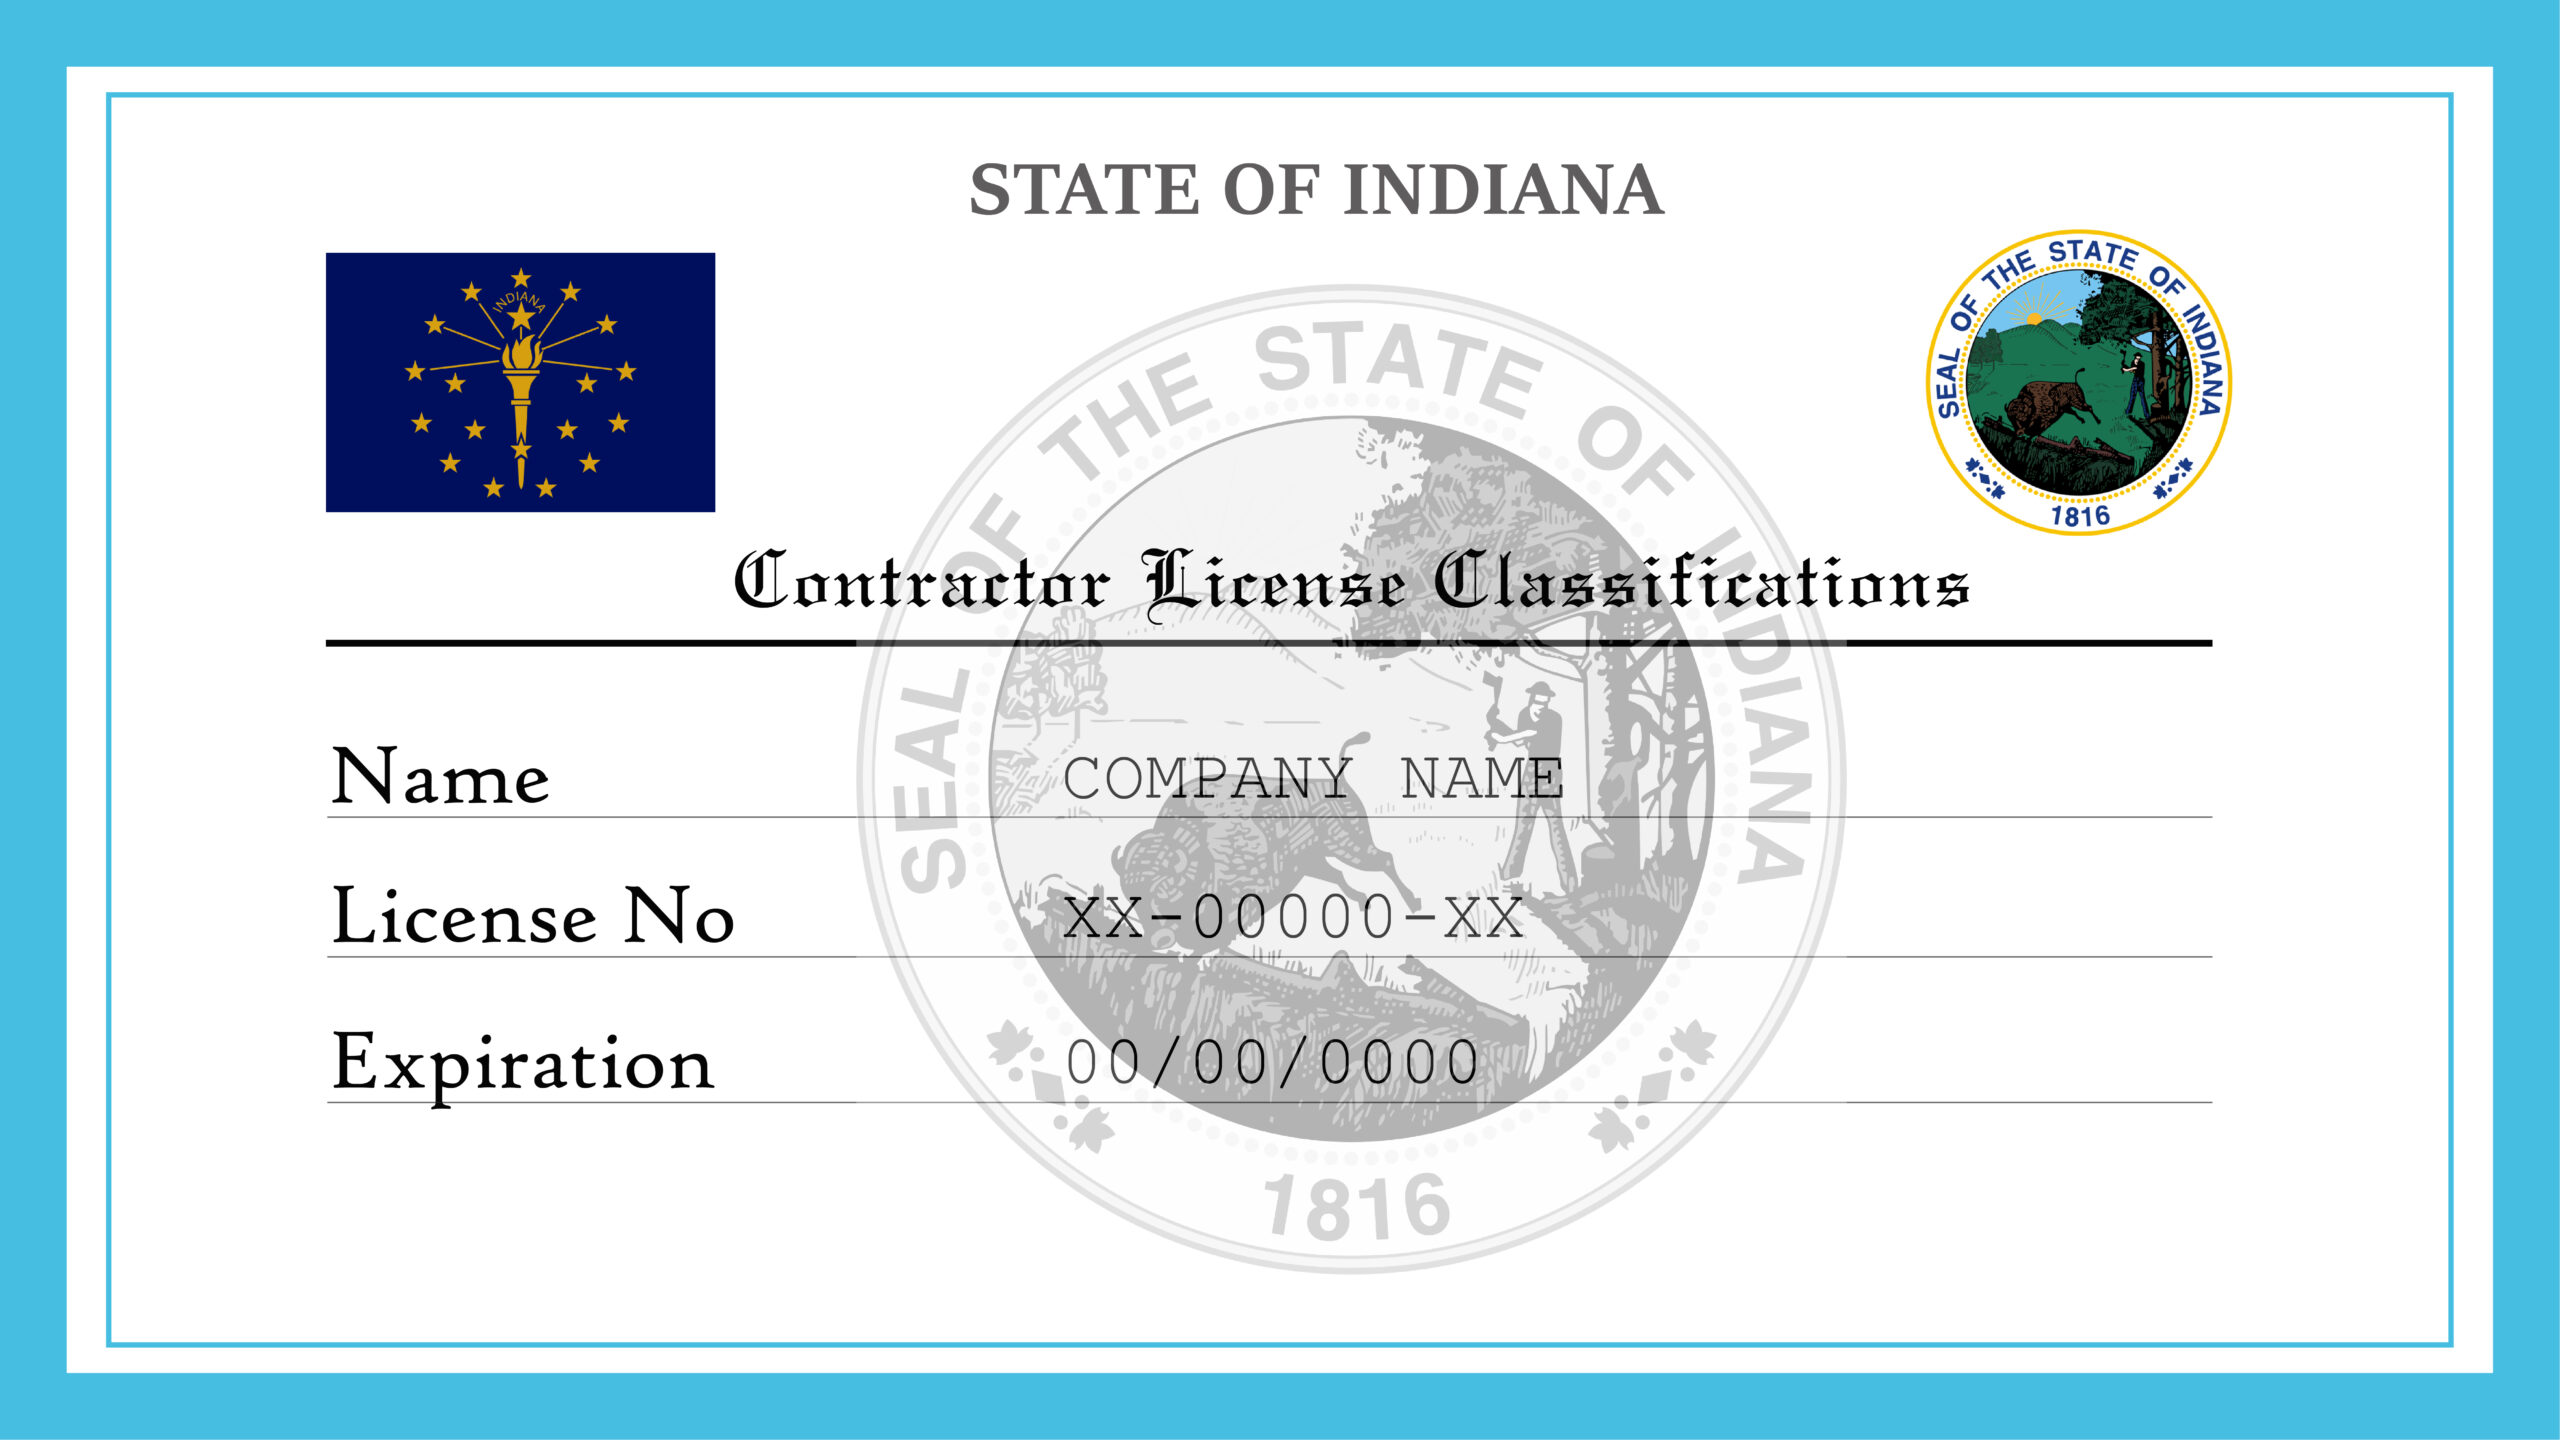 Sample Indiana Contractor License Classifications